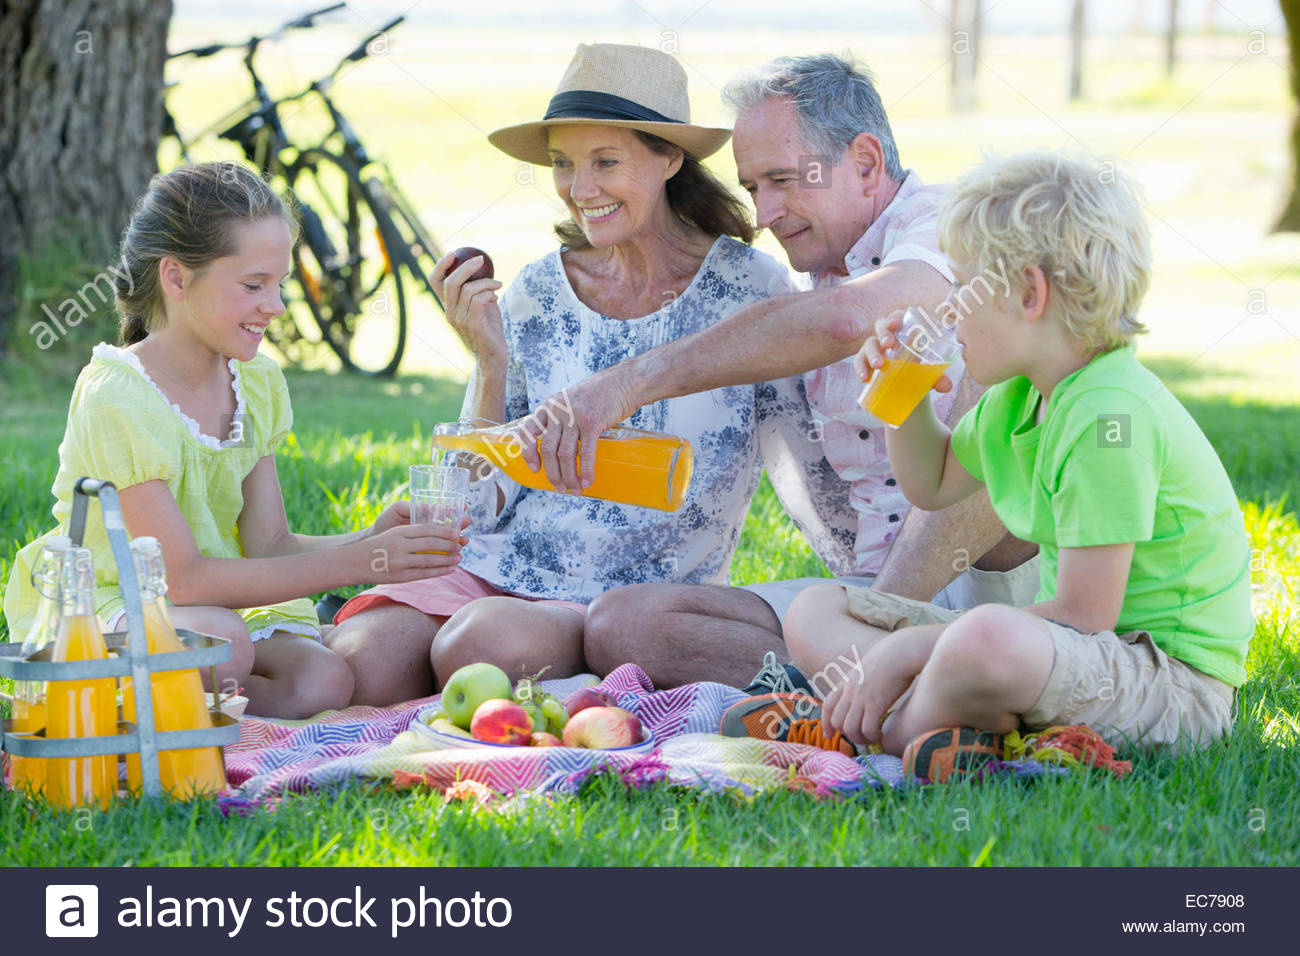 Children and grandparents having a picnic in countryside - Stock Image